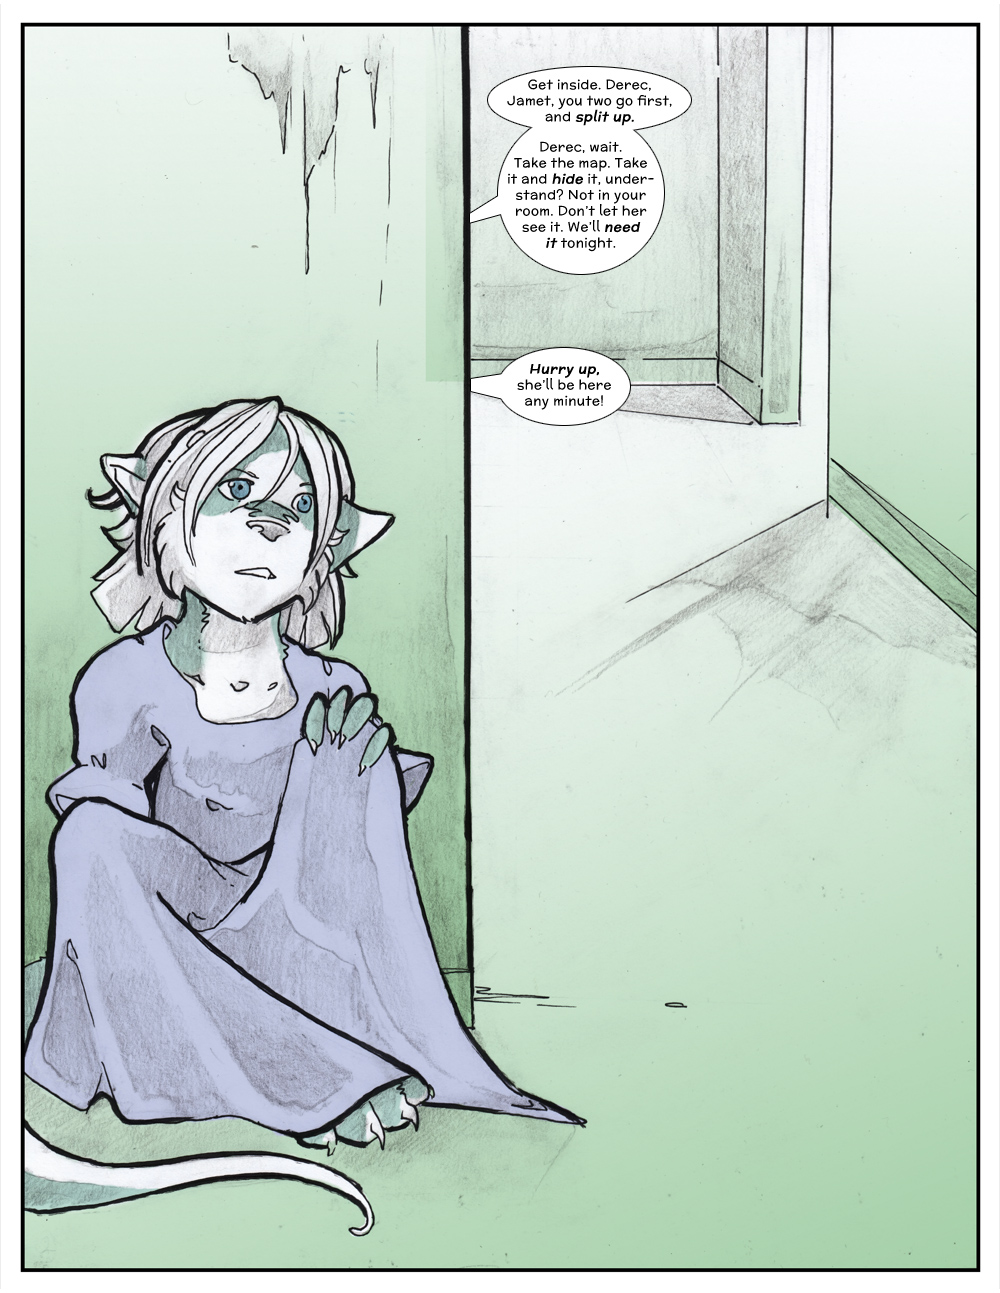 Chapter Three: Jamet's Story: Page 153